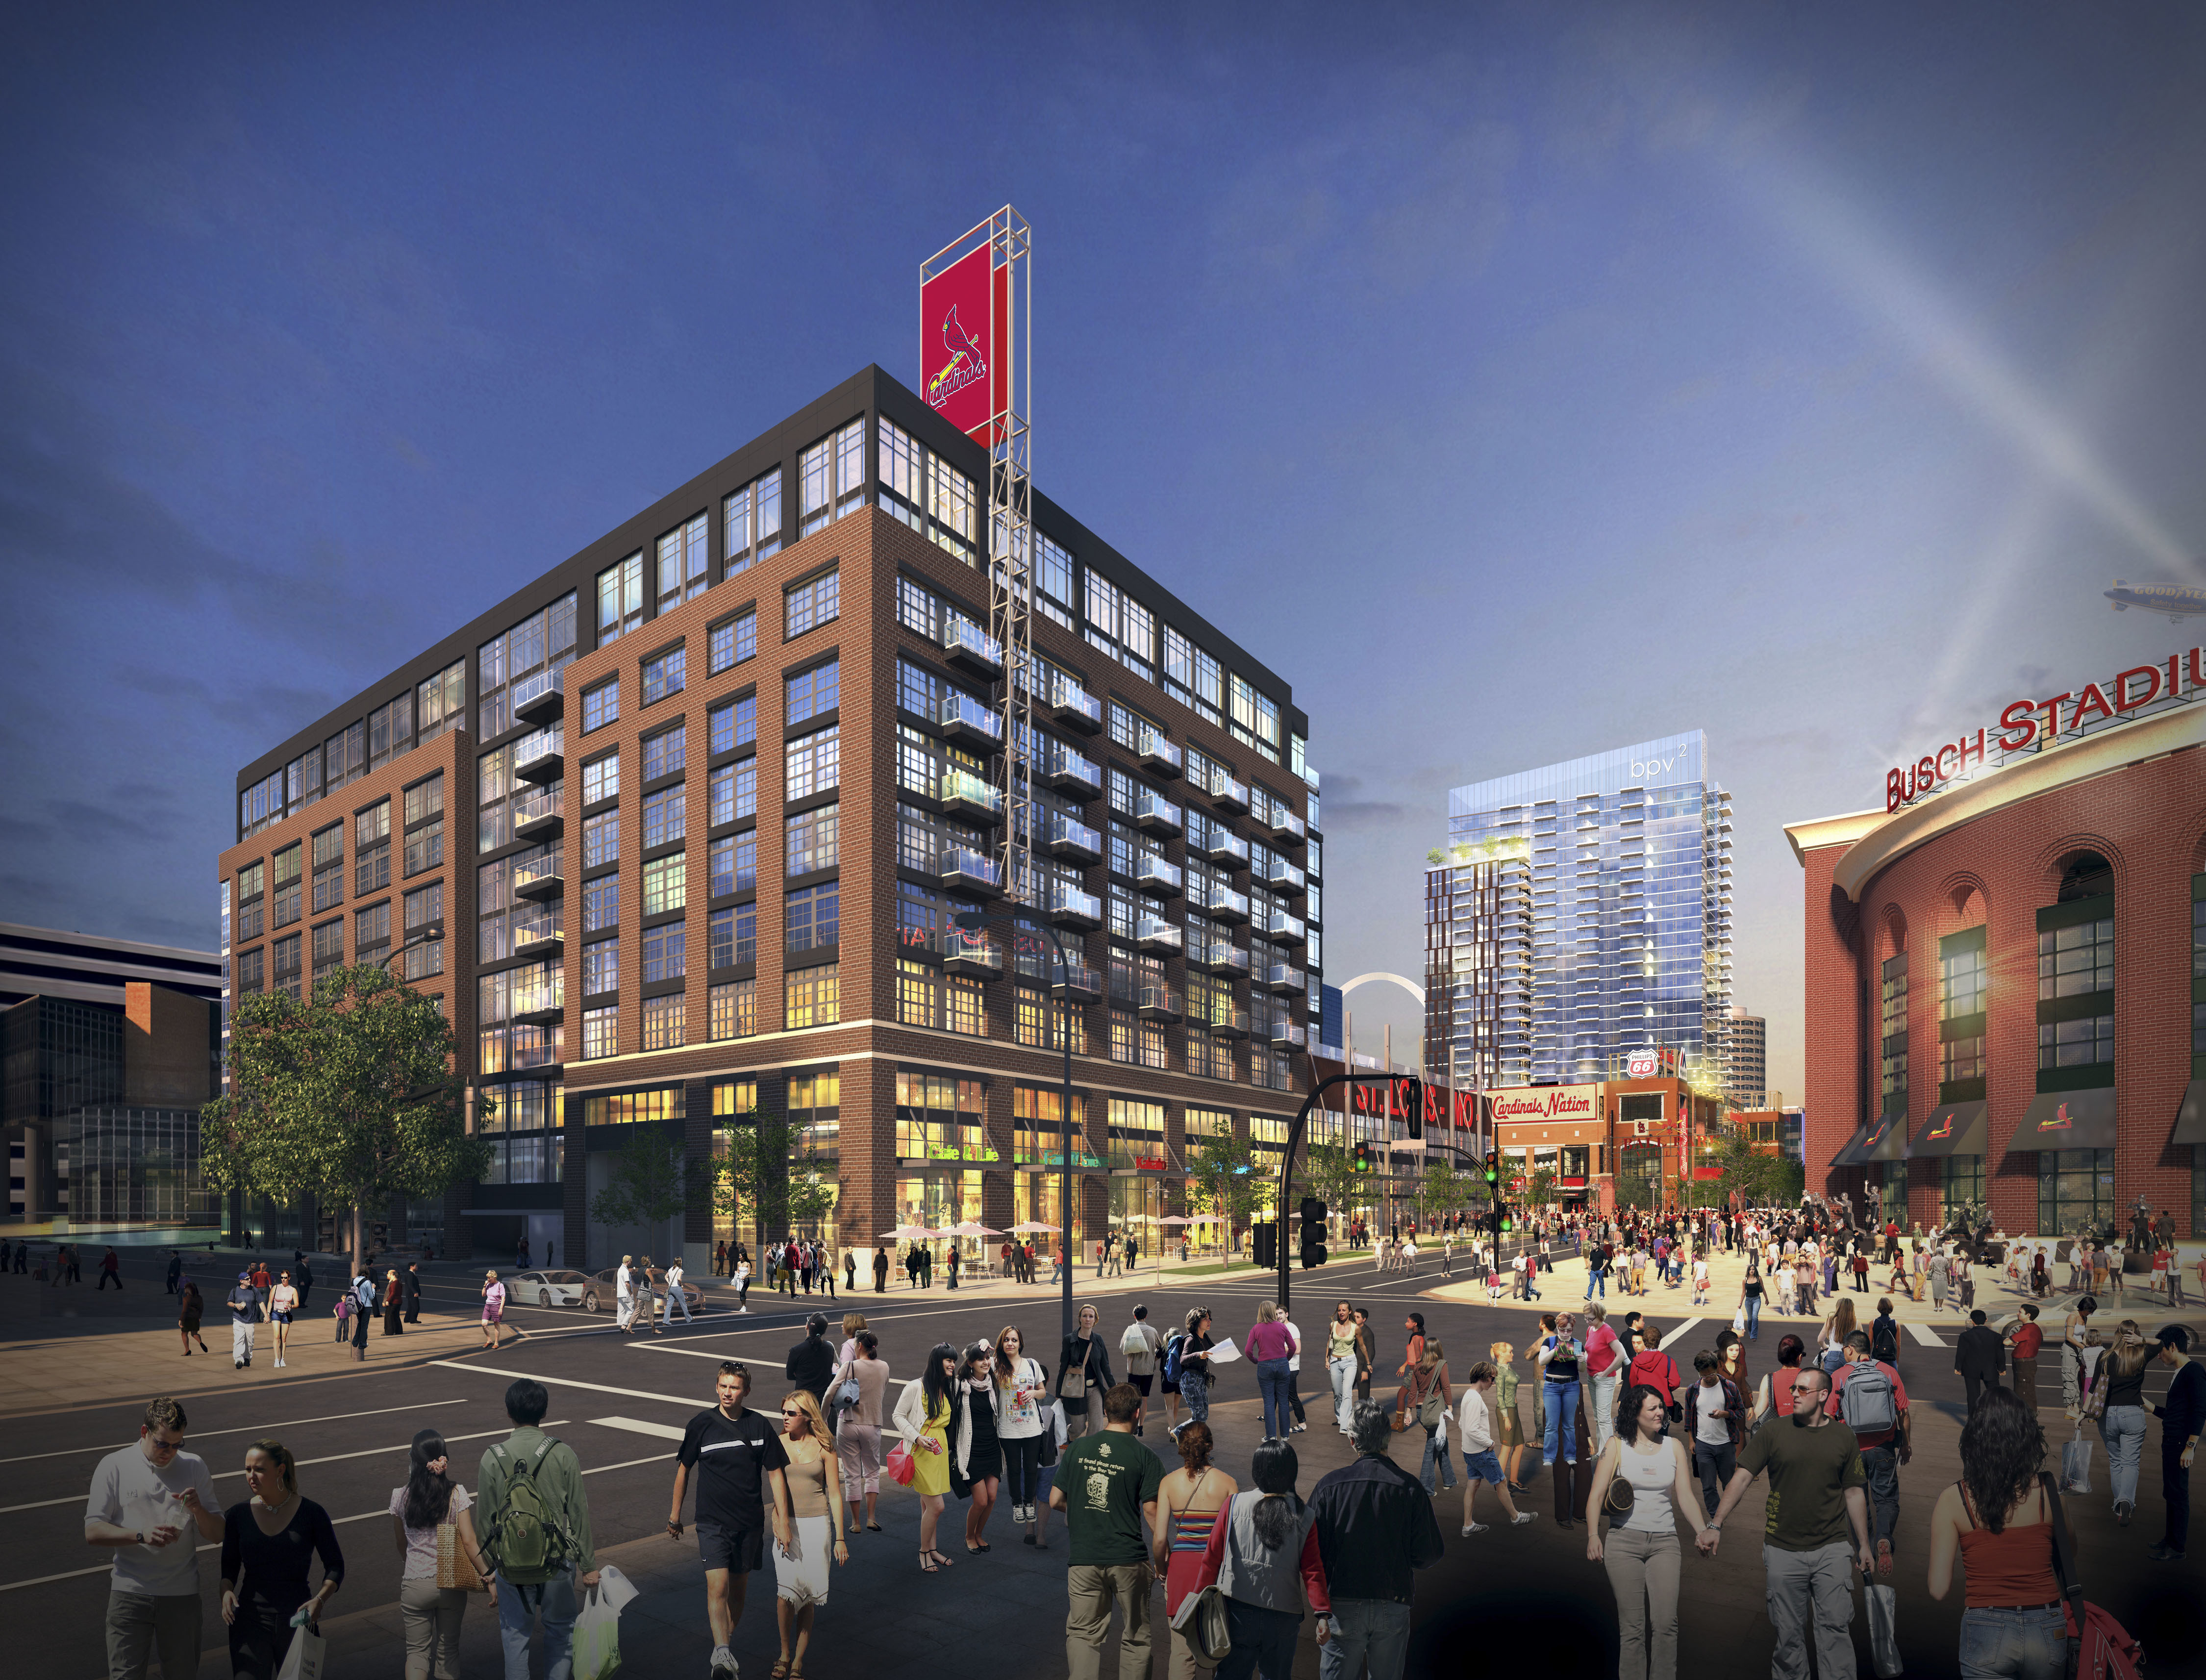 This artist rendering provided Arnold Design and the St. Louis Cardinals baseball team shows plans that were announced Tuesday, Oct. 25, 2016, for the second phase of Ballpark Village next to Busch Stadium in downtown St. Louis. It will feature a 29-story